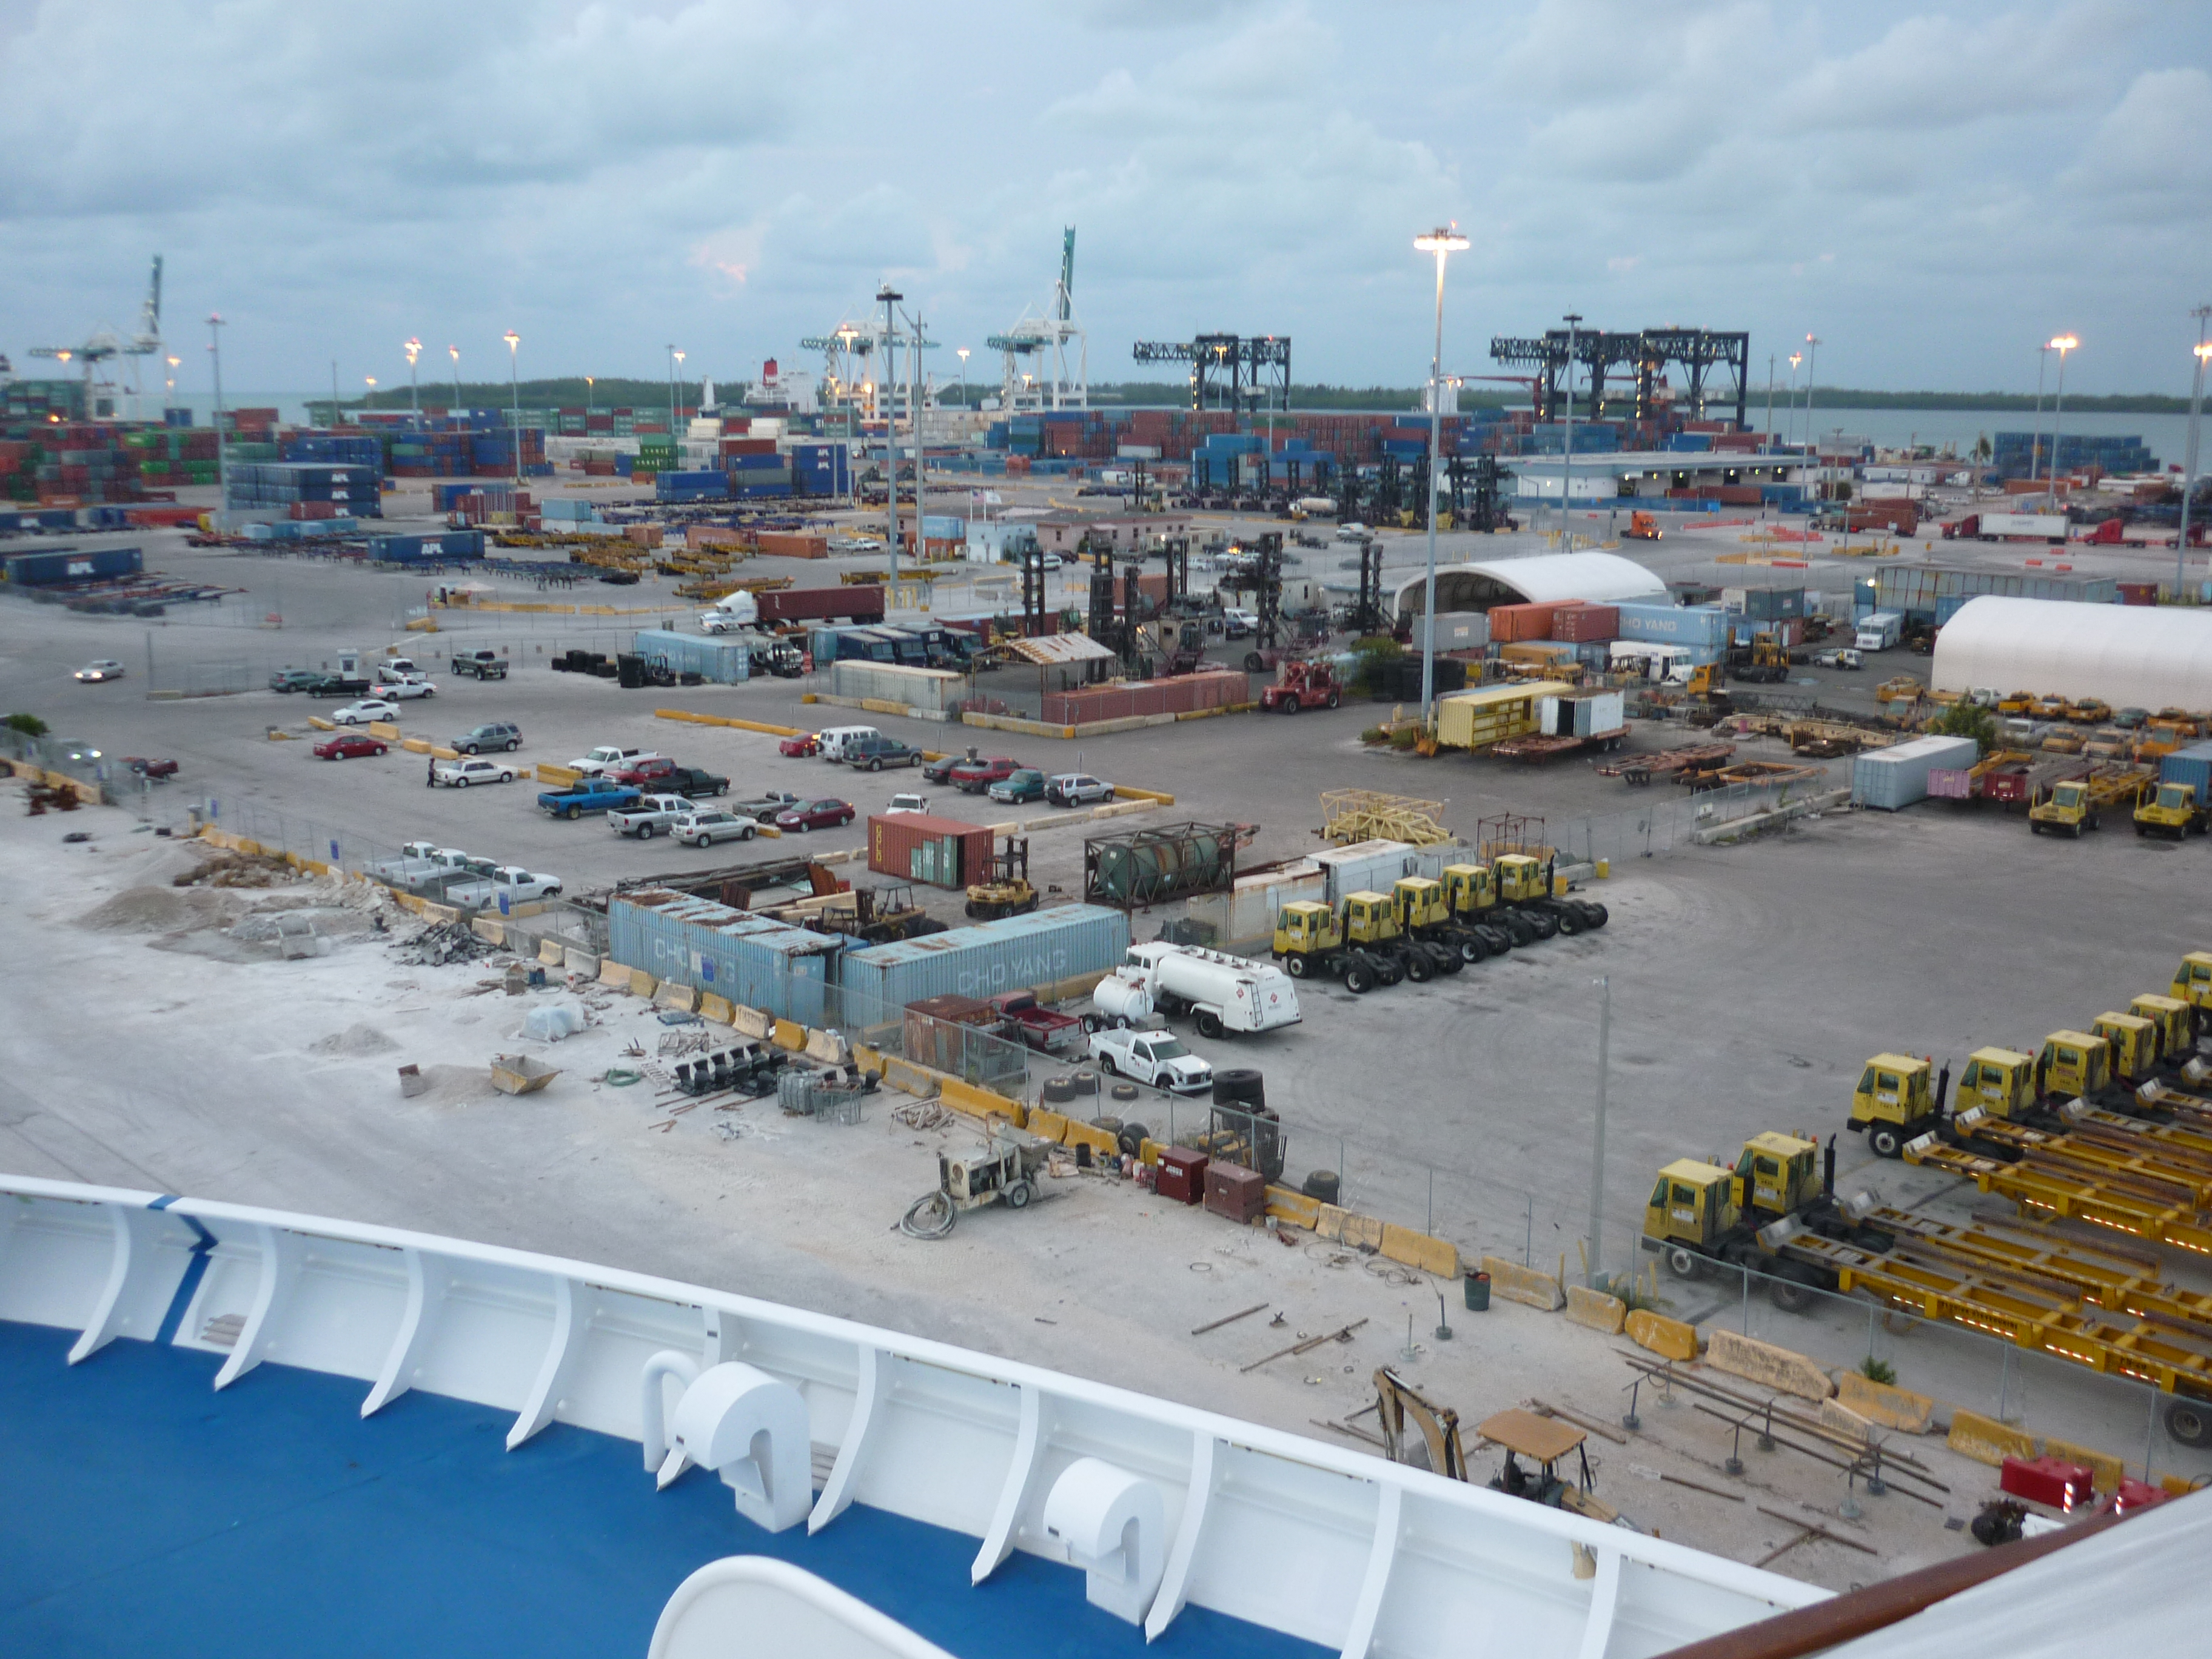 elevated view of a cargo shipping terminal